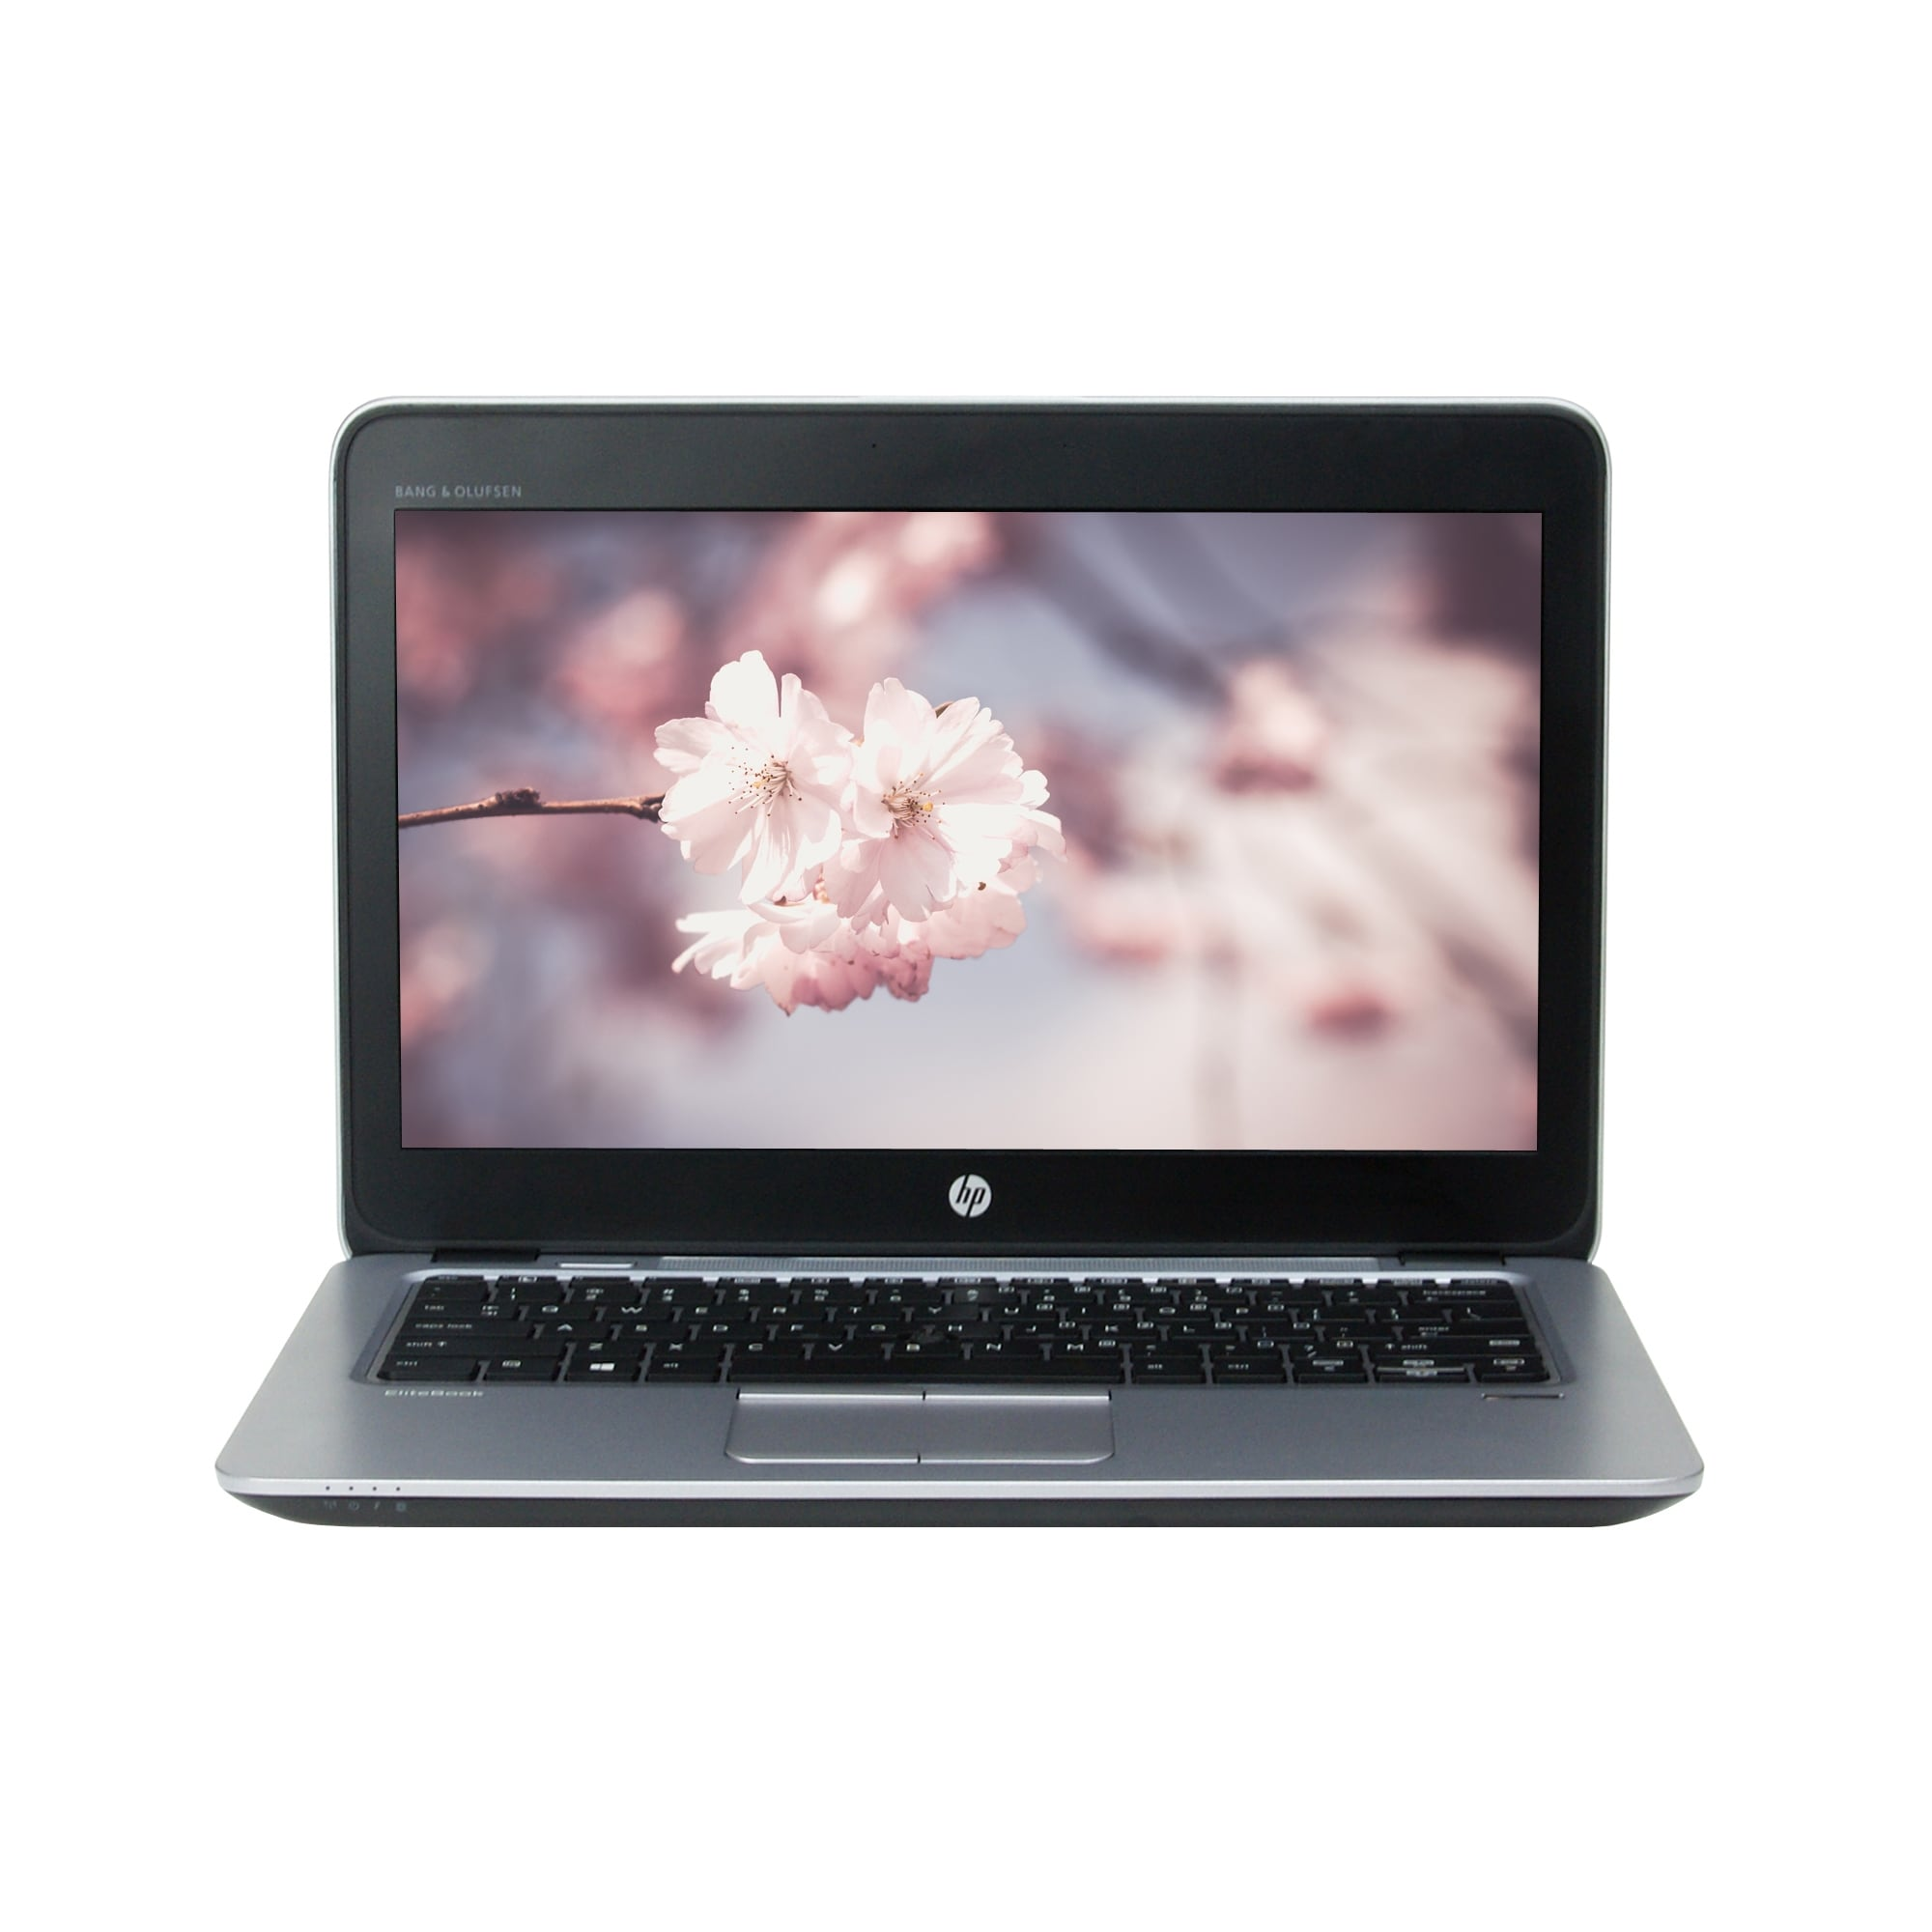 HP EliteBook 820 G1 Intel i5-4300U 8GB 500GB Windows 10 webcam non Pro